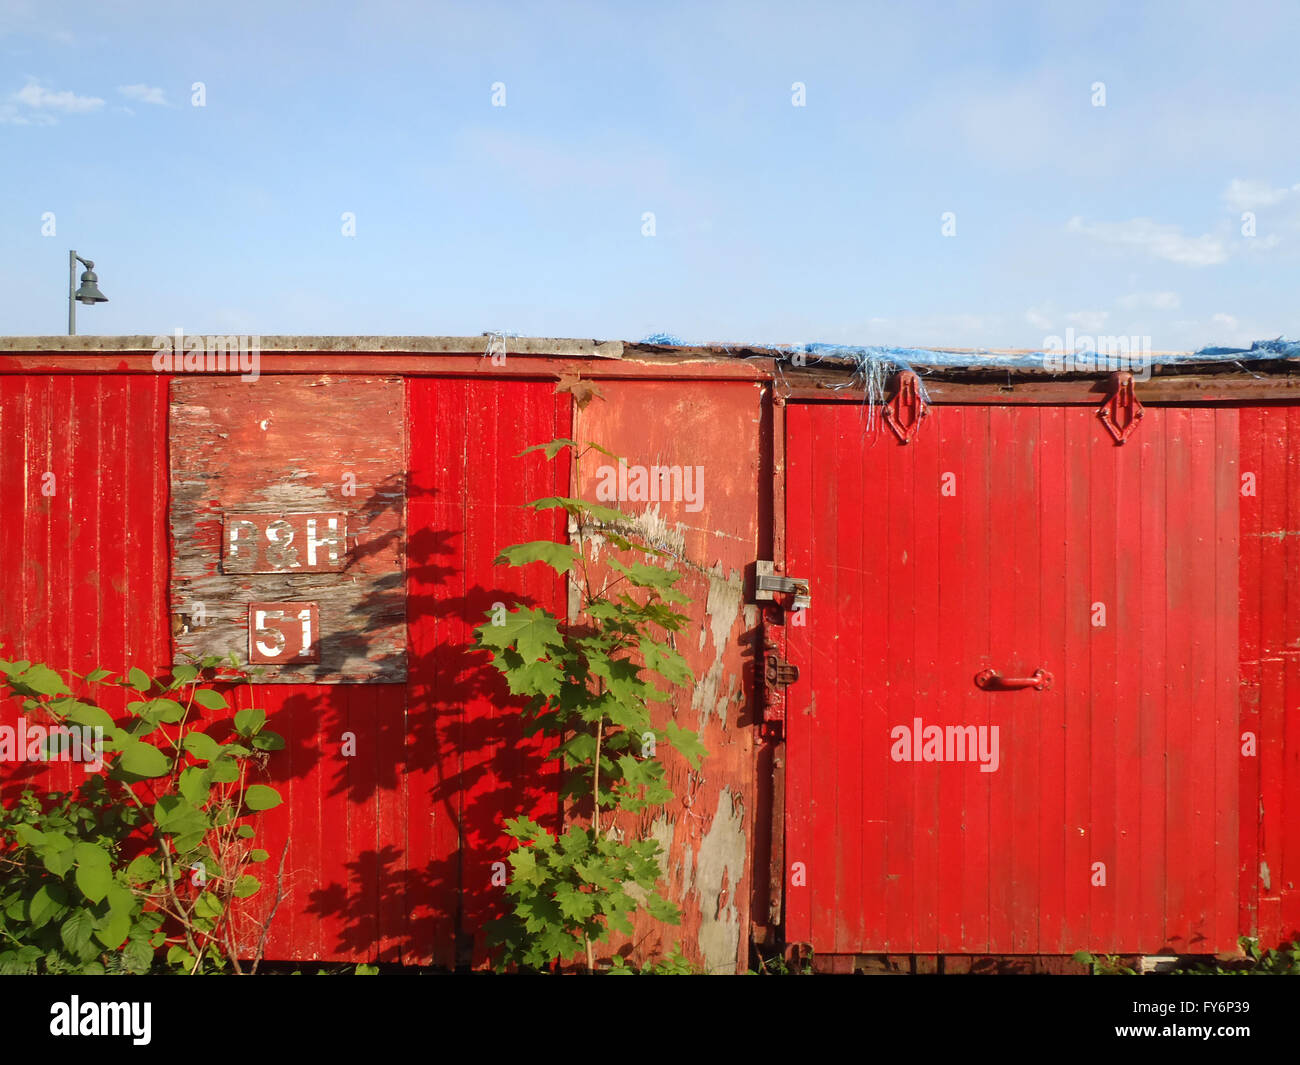 Old Red Rail cars with the word B & H 51 fade in the sun in Portland, Maine. - Stock Image